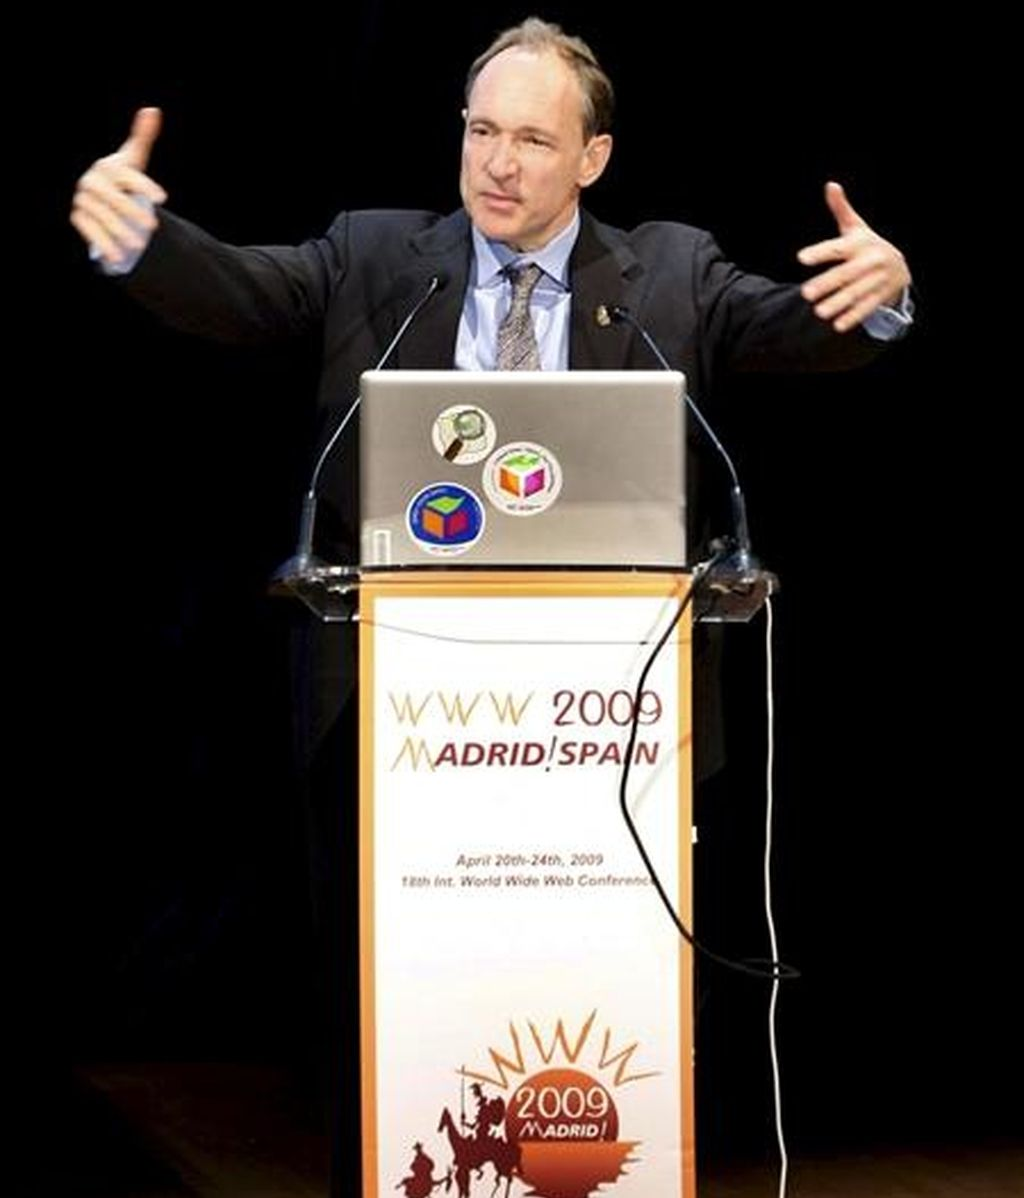 Tim Berners-Lee, inventor de la web, durante su intervención en el 18 Congreso Internacional World Wide Web (WWW2009). EFE/Archivo